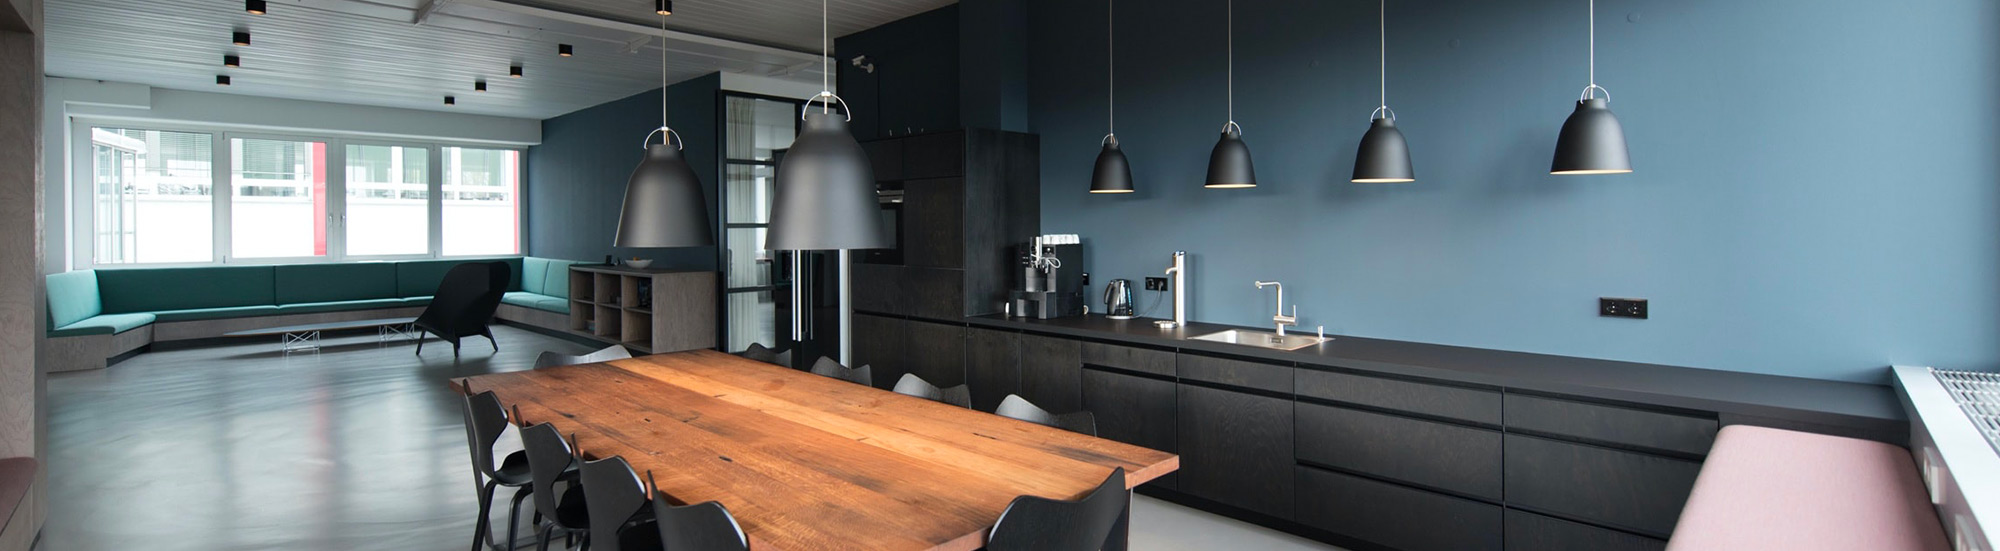 Property renovation in Italy